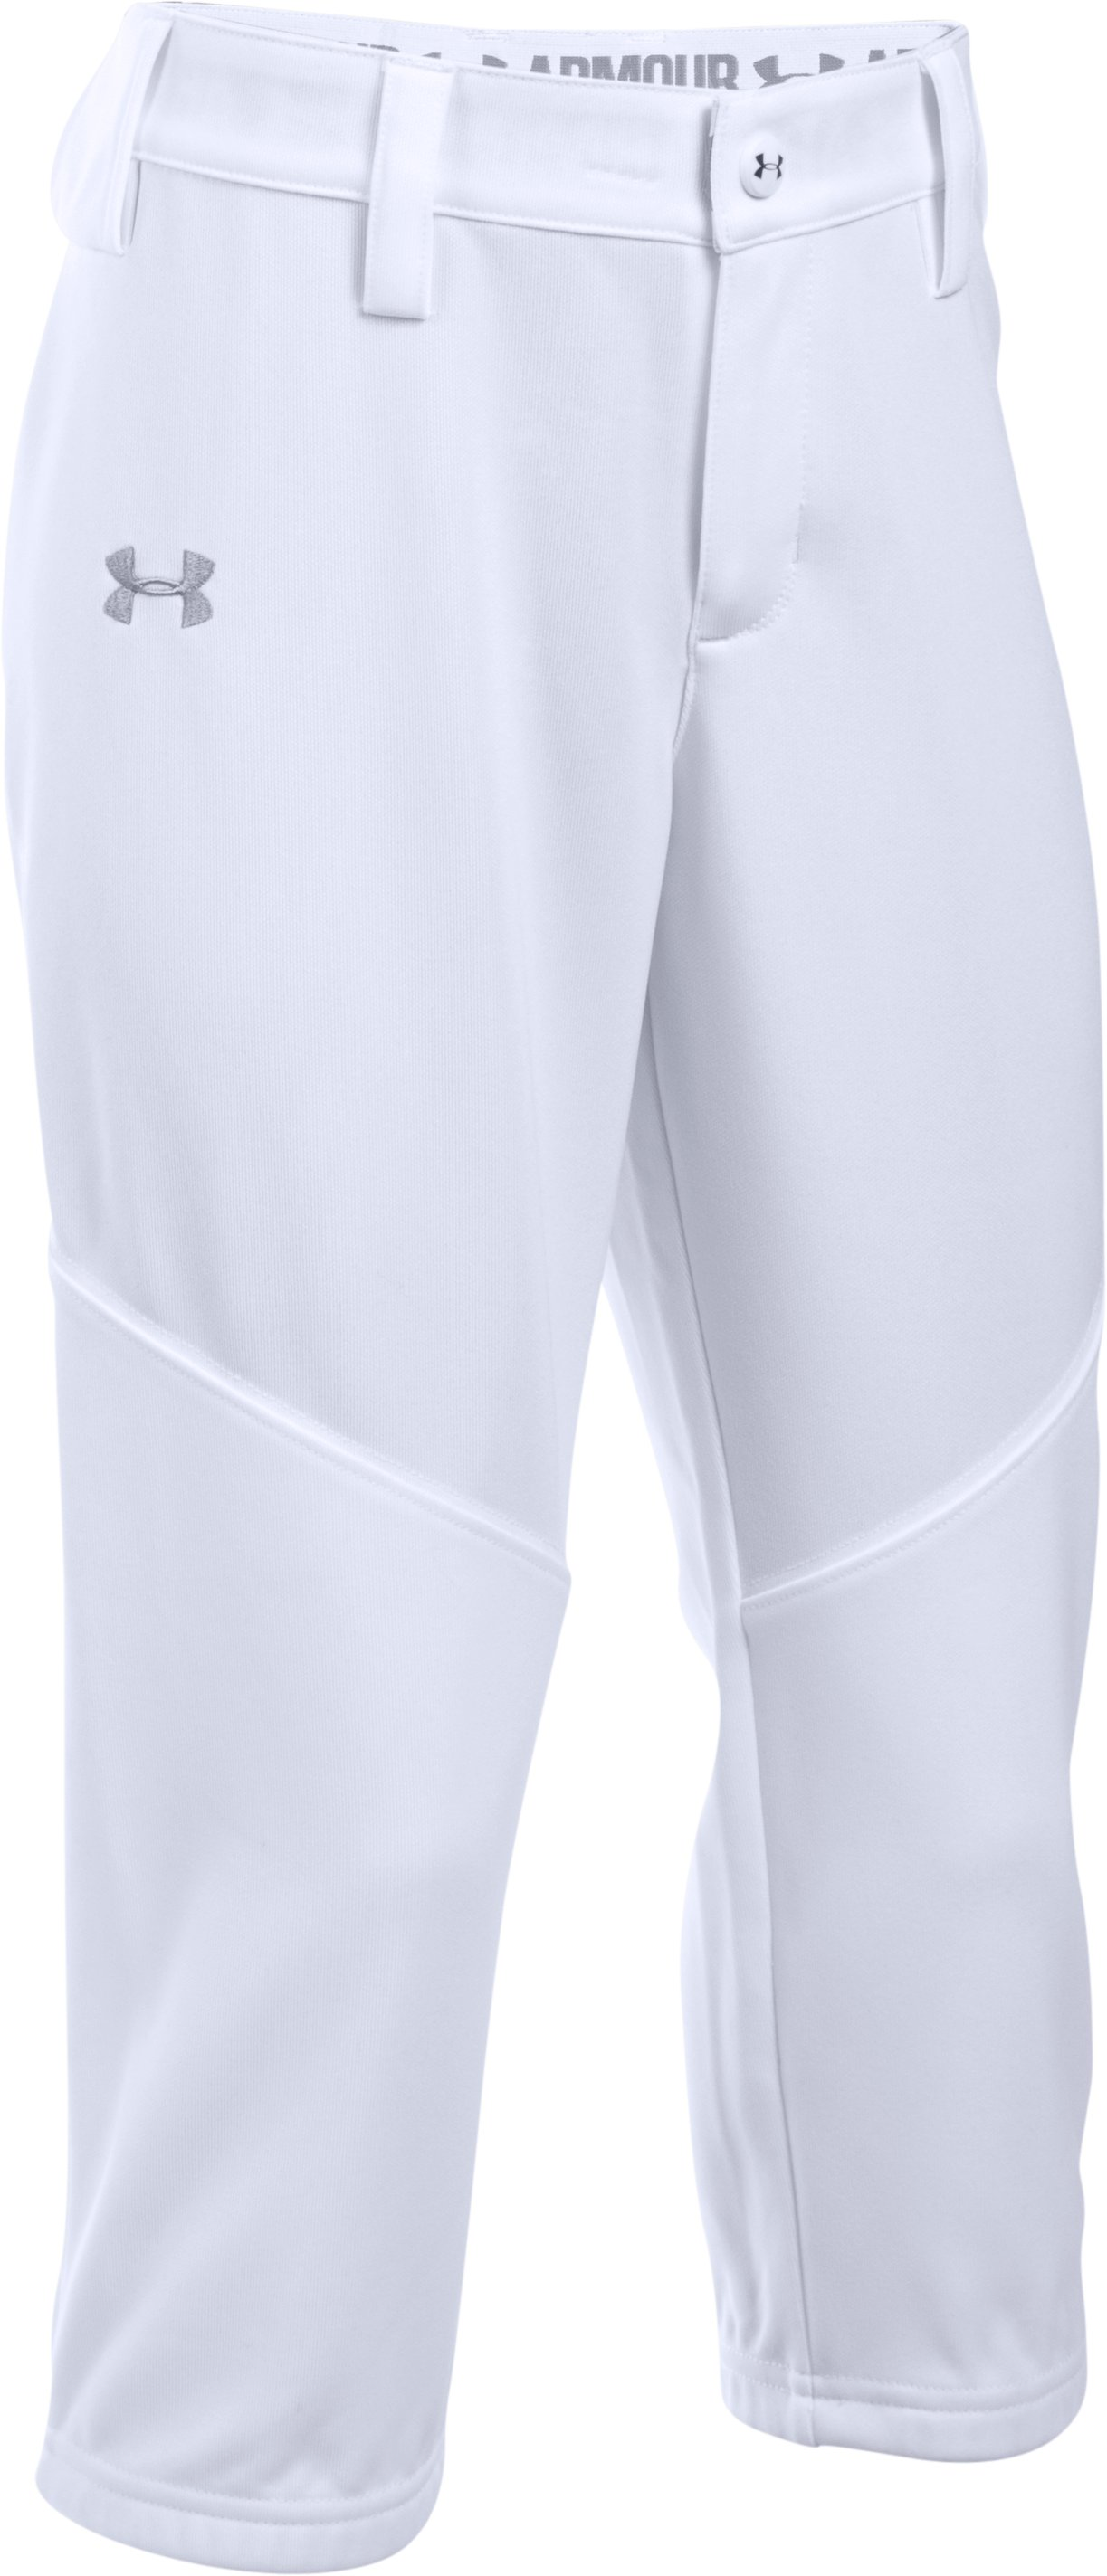 Girls' UA Base Runner Softball Pants, White, zoomed image